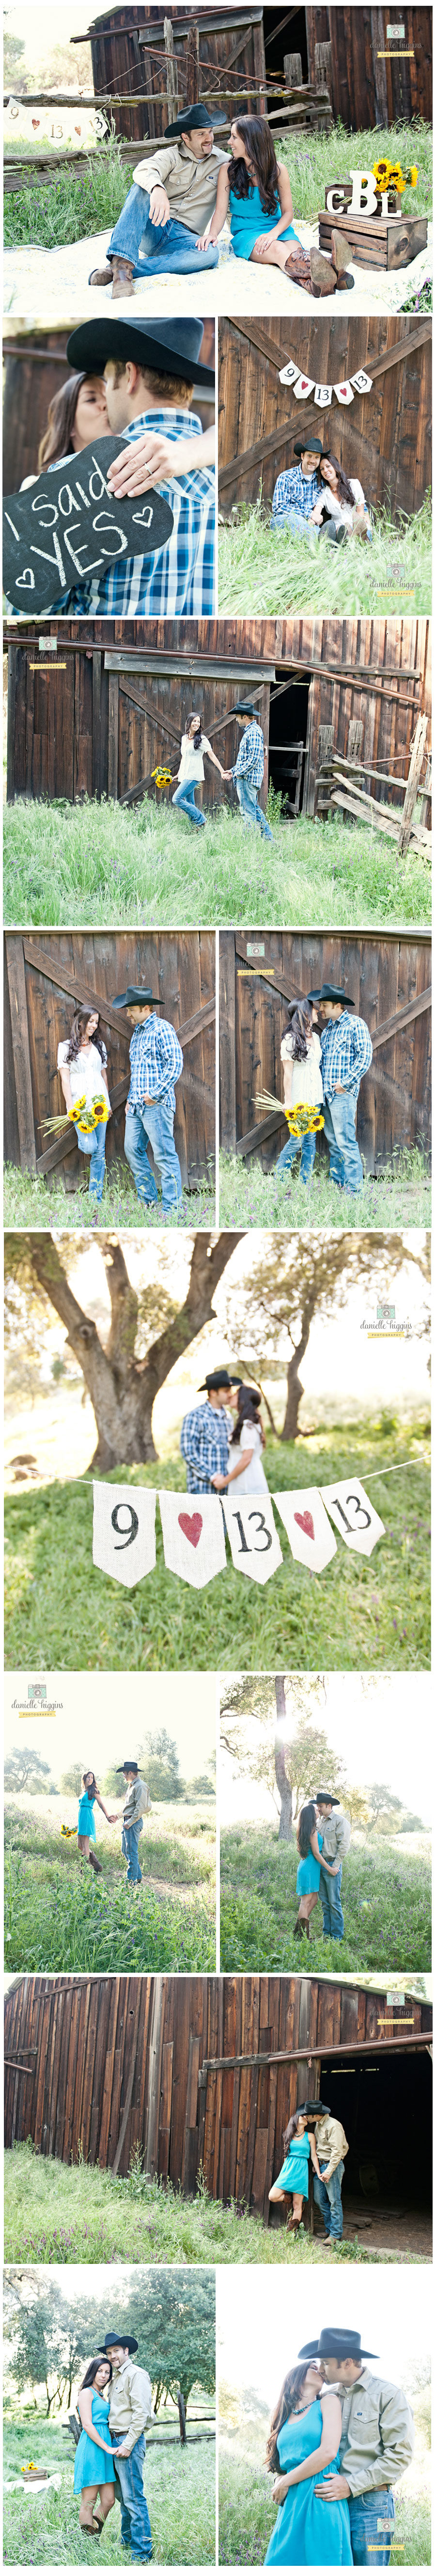 Engagement Photographer - Danielle Higgins Photography